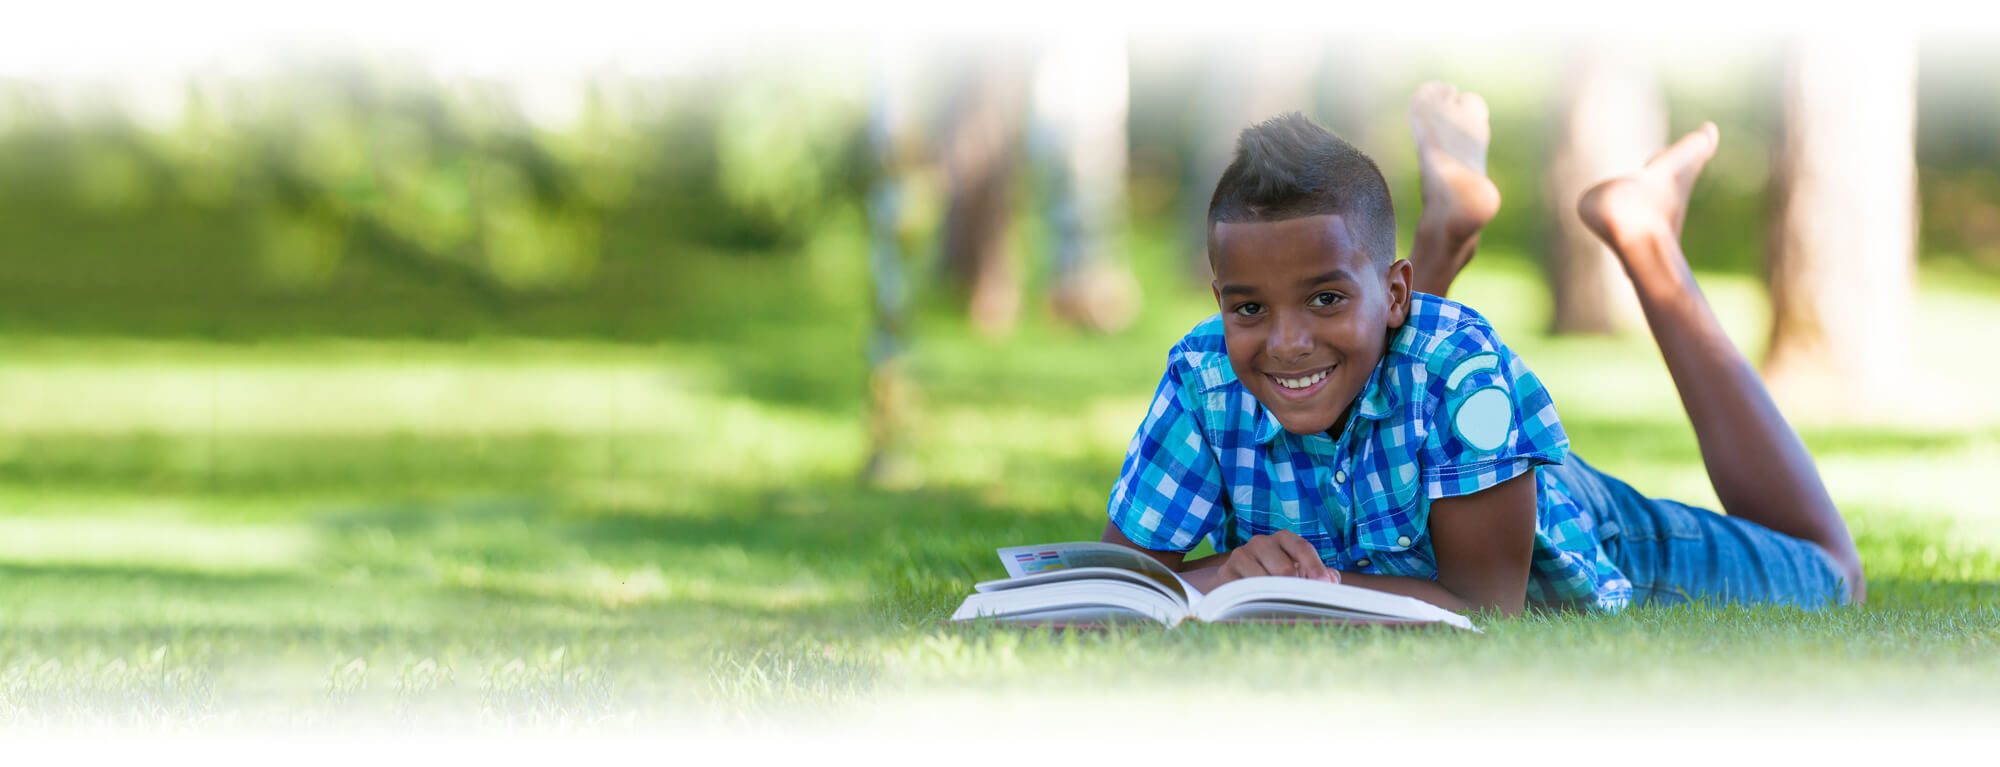 student boy lying on grass reading book